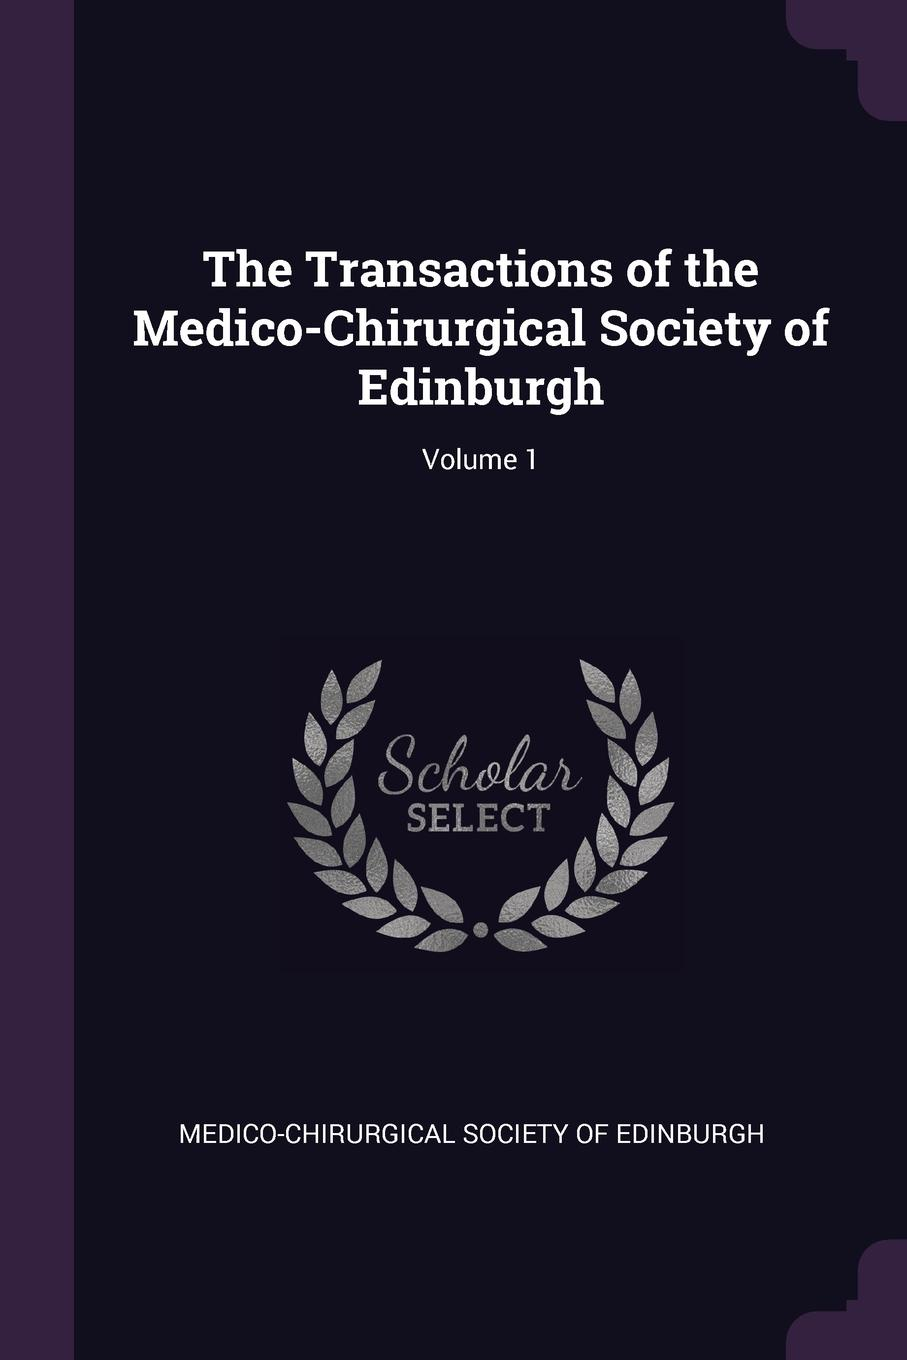 The Transactions of the Medico-Chirurgical Society of Edinburgh; Volume 1